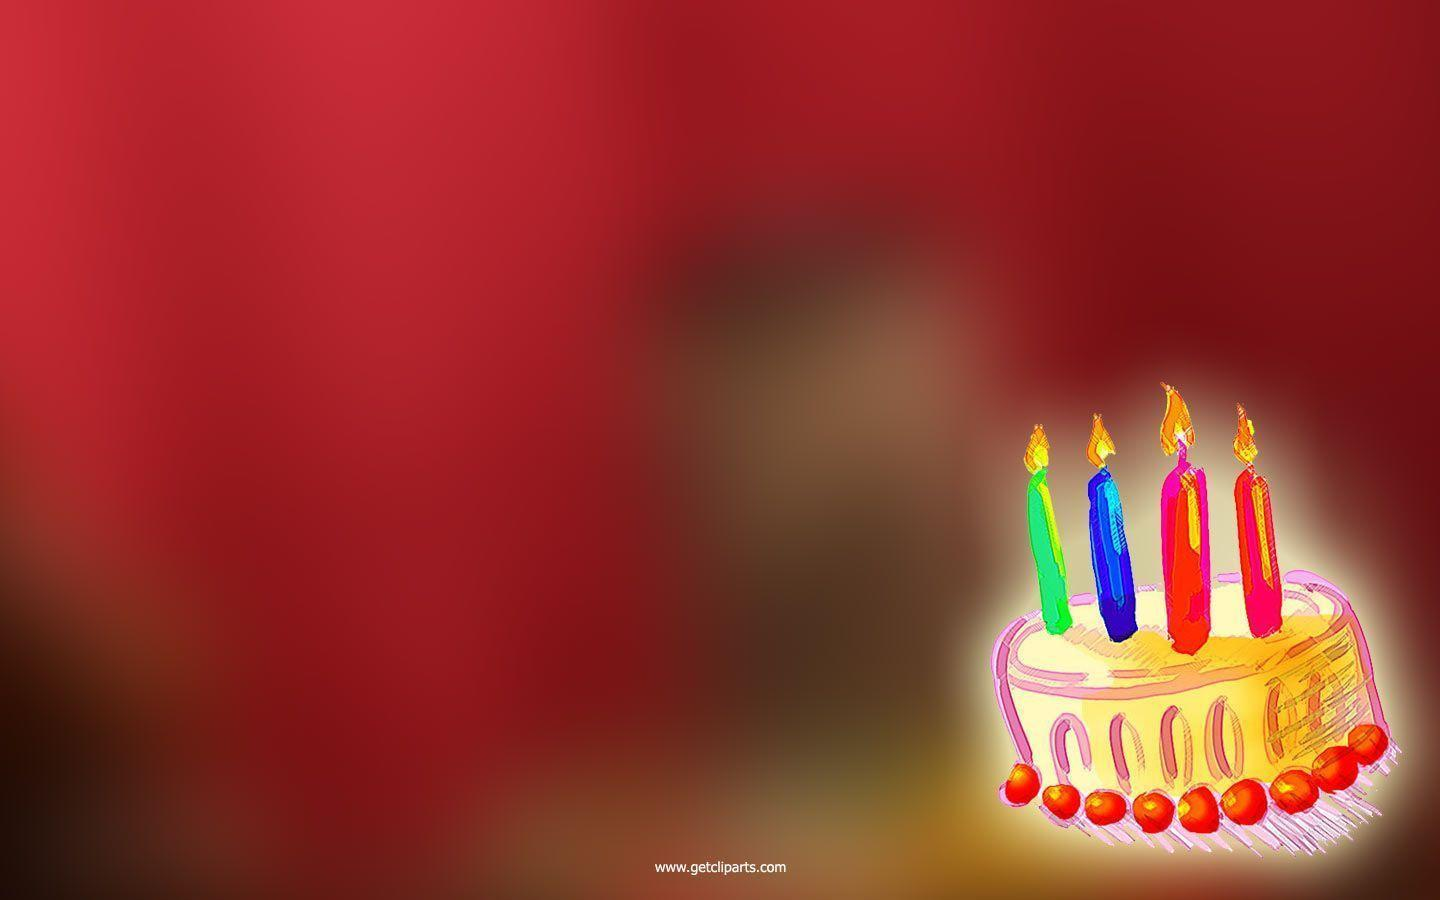 happy birthday wallpapers hd - photo #13